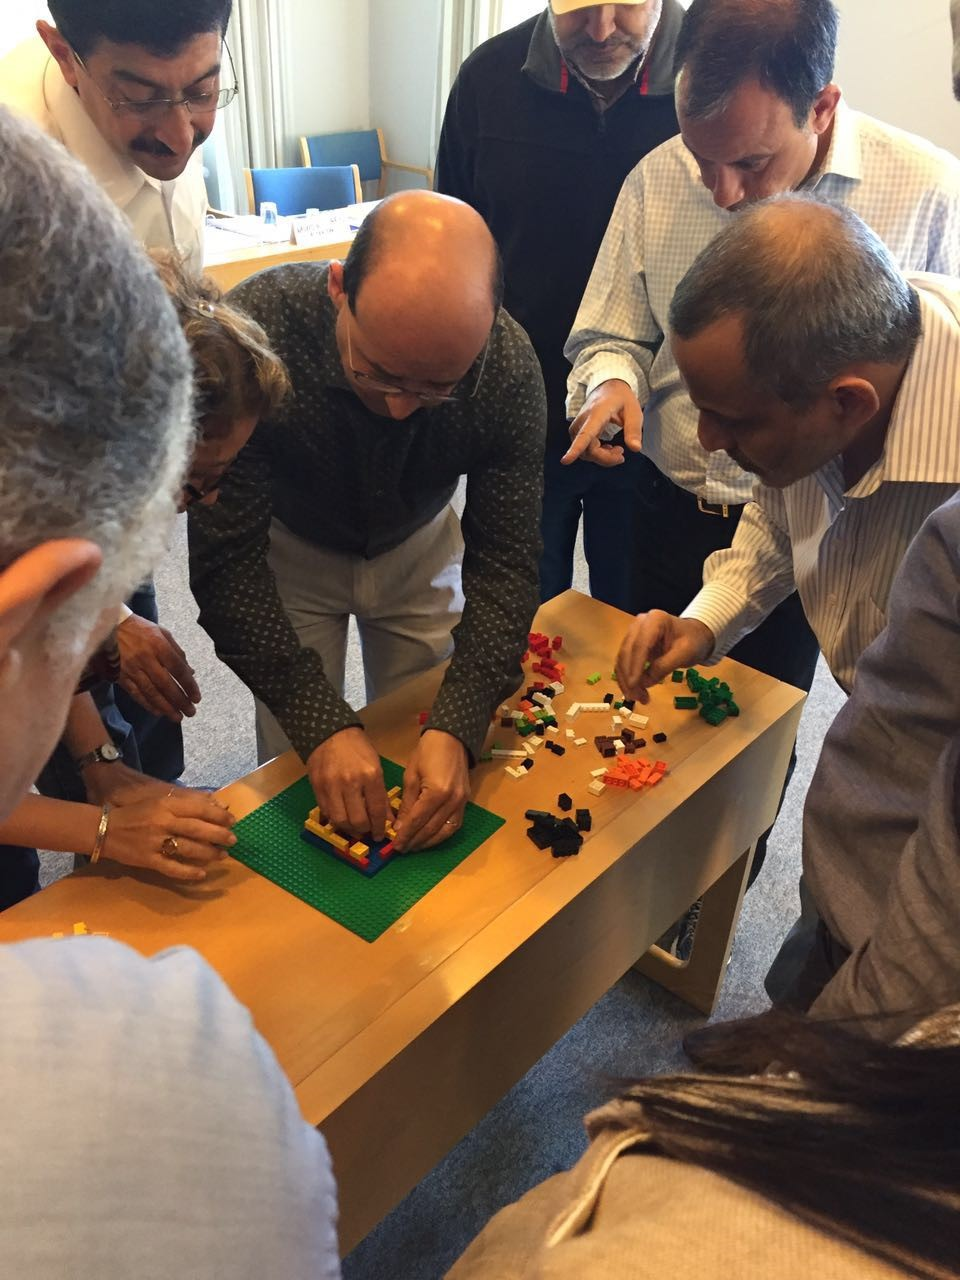 The program was a creative mix of lectures, groups work, class discussions and practical exercises. The picture portrays one such exercise, where the participants were challenged to build a structure with LEGO in silence, with different and secret instructions.